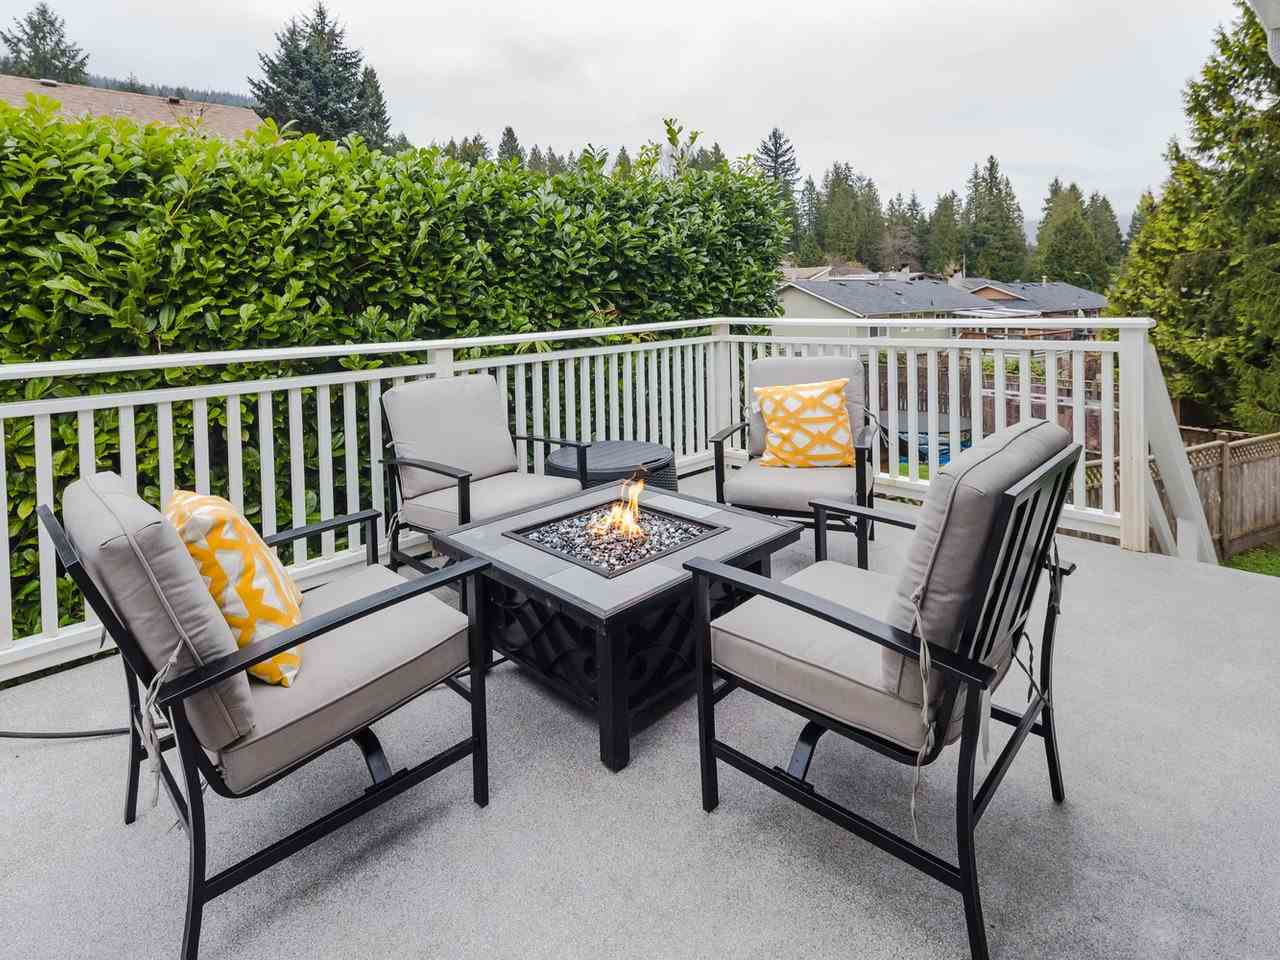 951 HENDECOURT PLACE - Lynn Valley House/Single Family for sale, 4 Bedrooms (R2558686) - #12